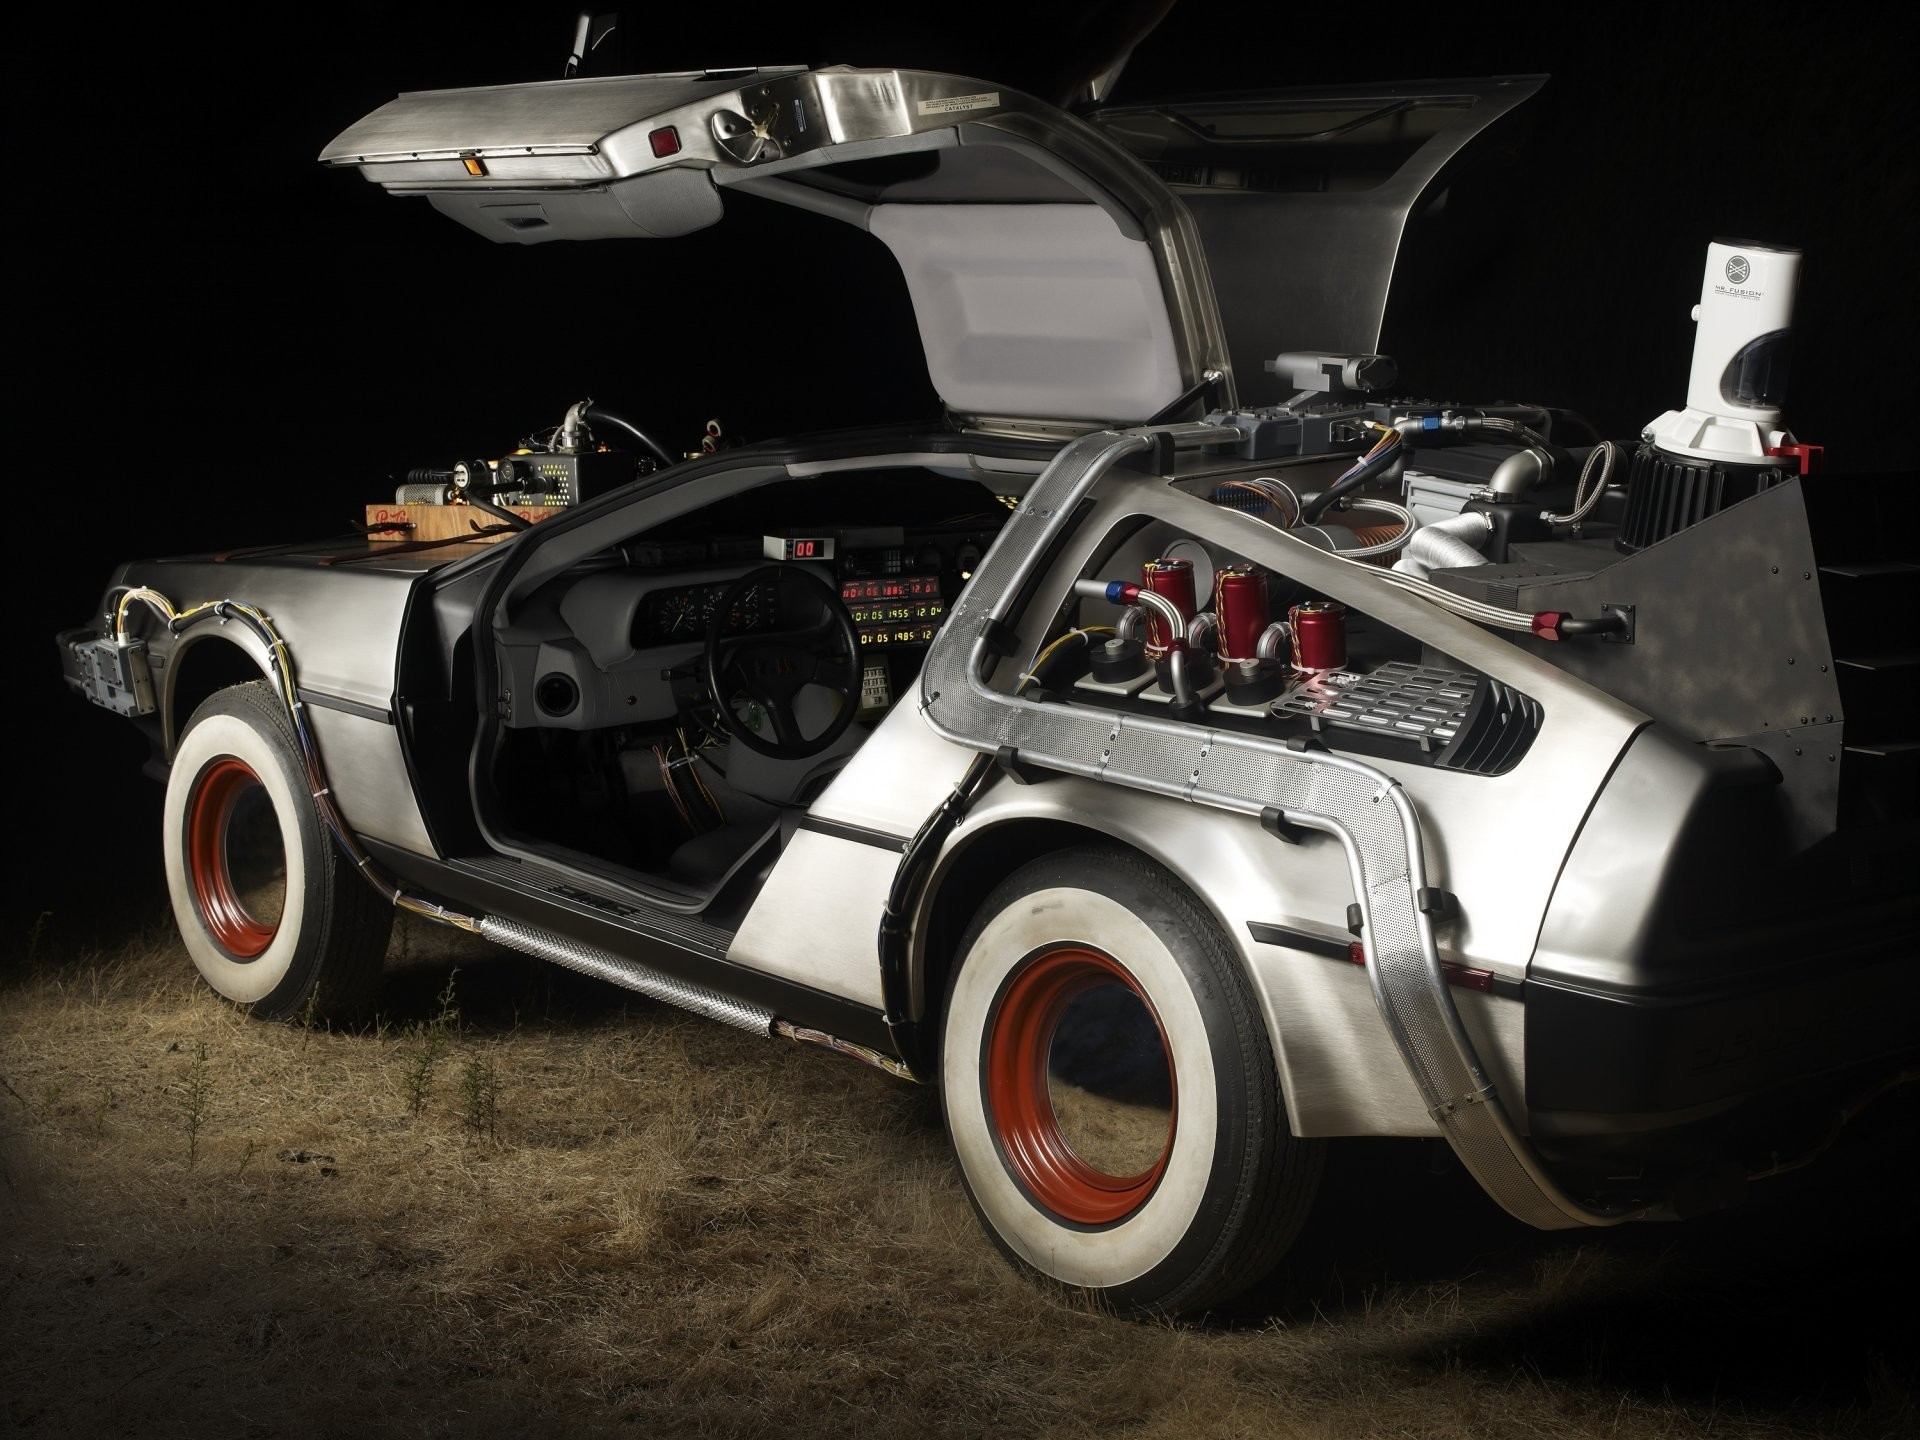 back to the future delorean marty mcfly emmett brown